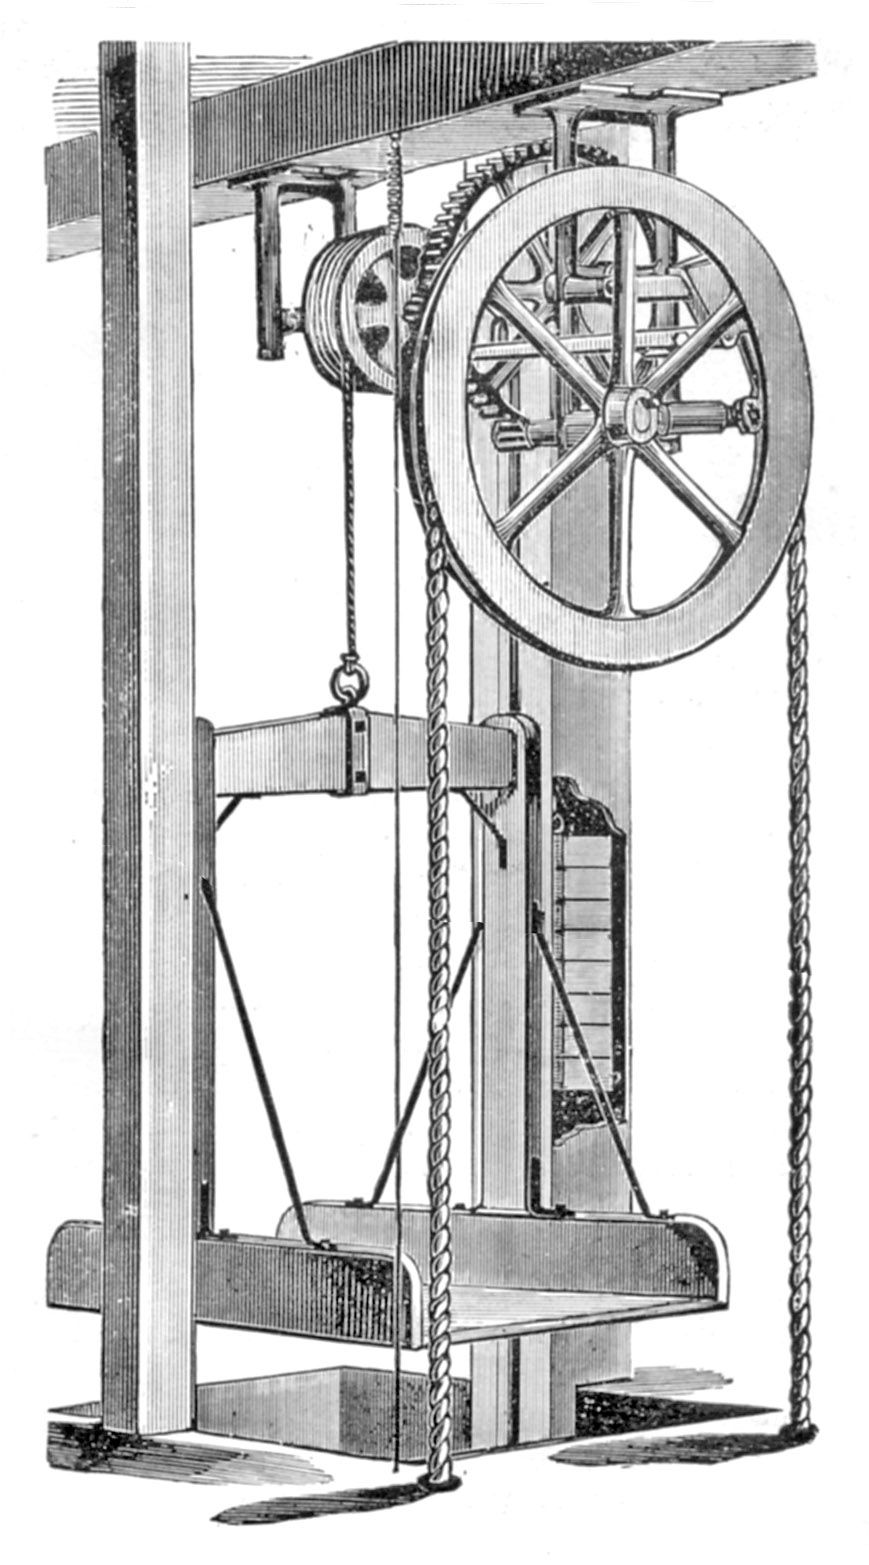 Edwin Harrington Hand Power Elevators Pages 142 143 Elevator Wiring Schematic For Dumb Waiter Design